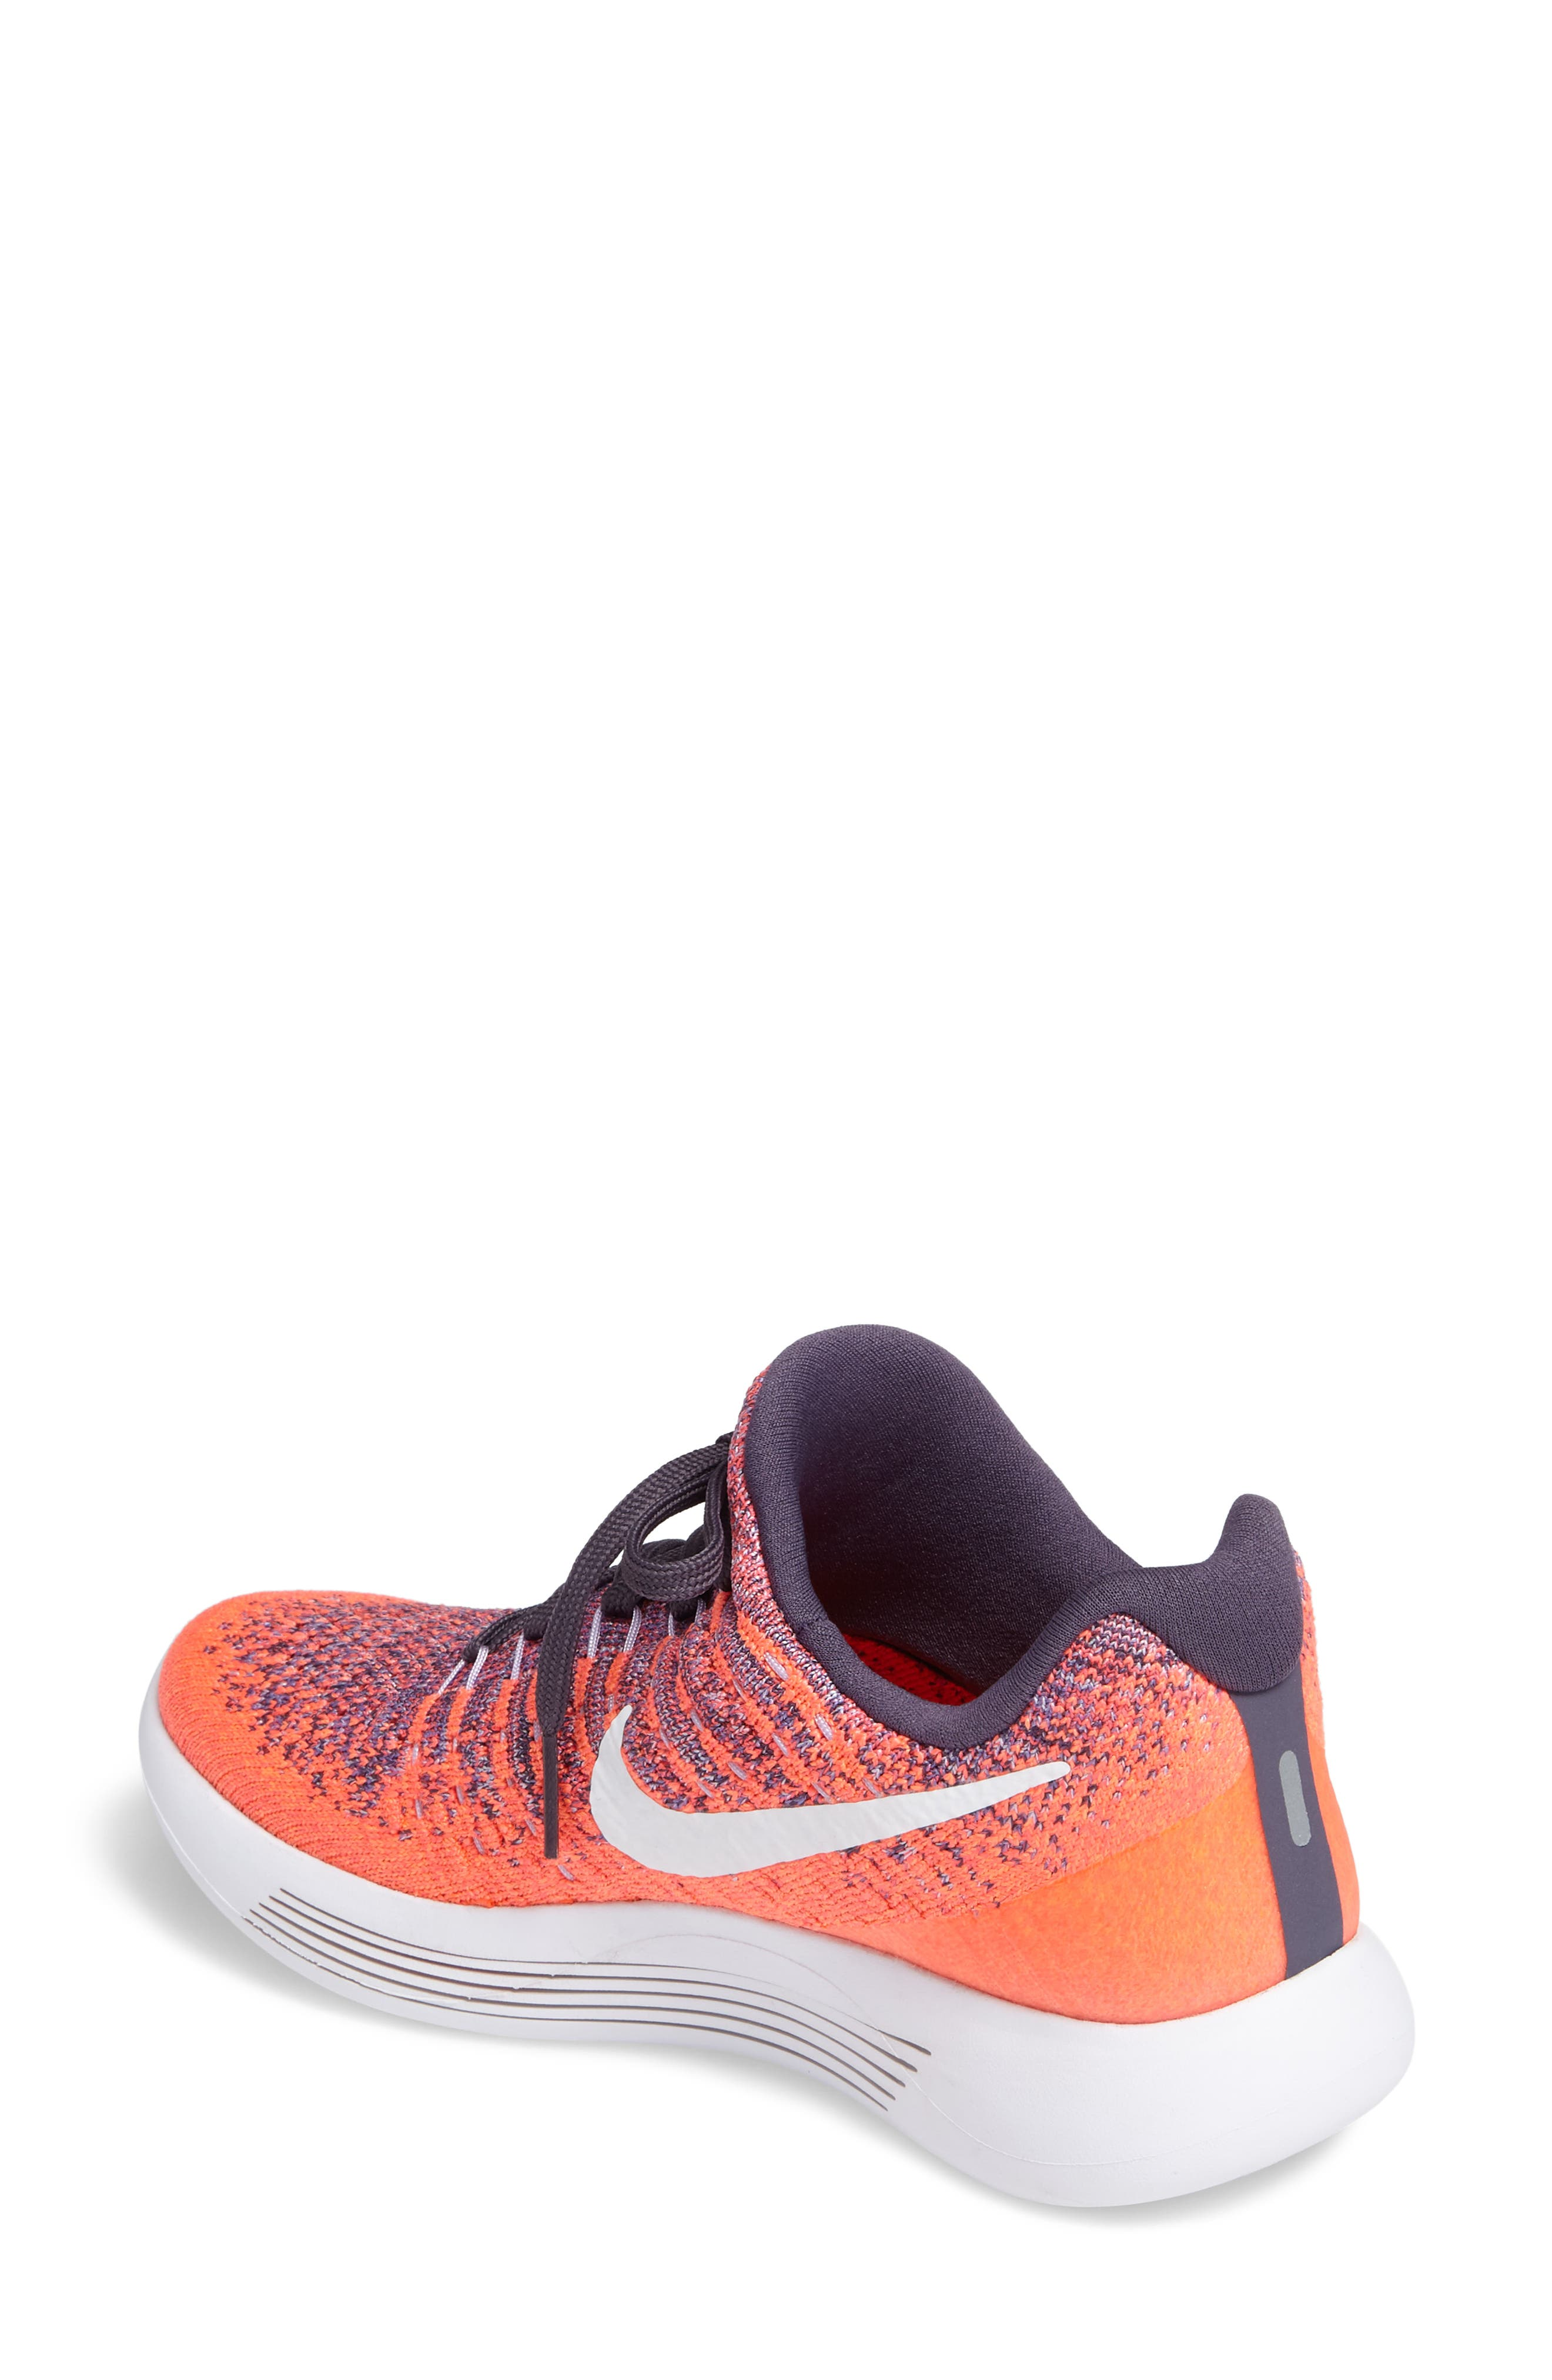 ,                             LunarEpic Low Flyknit 2 Running Shoe,                             Alternate thumbnail 90, color,                             500